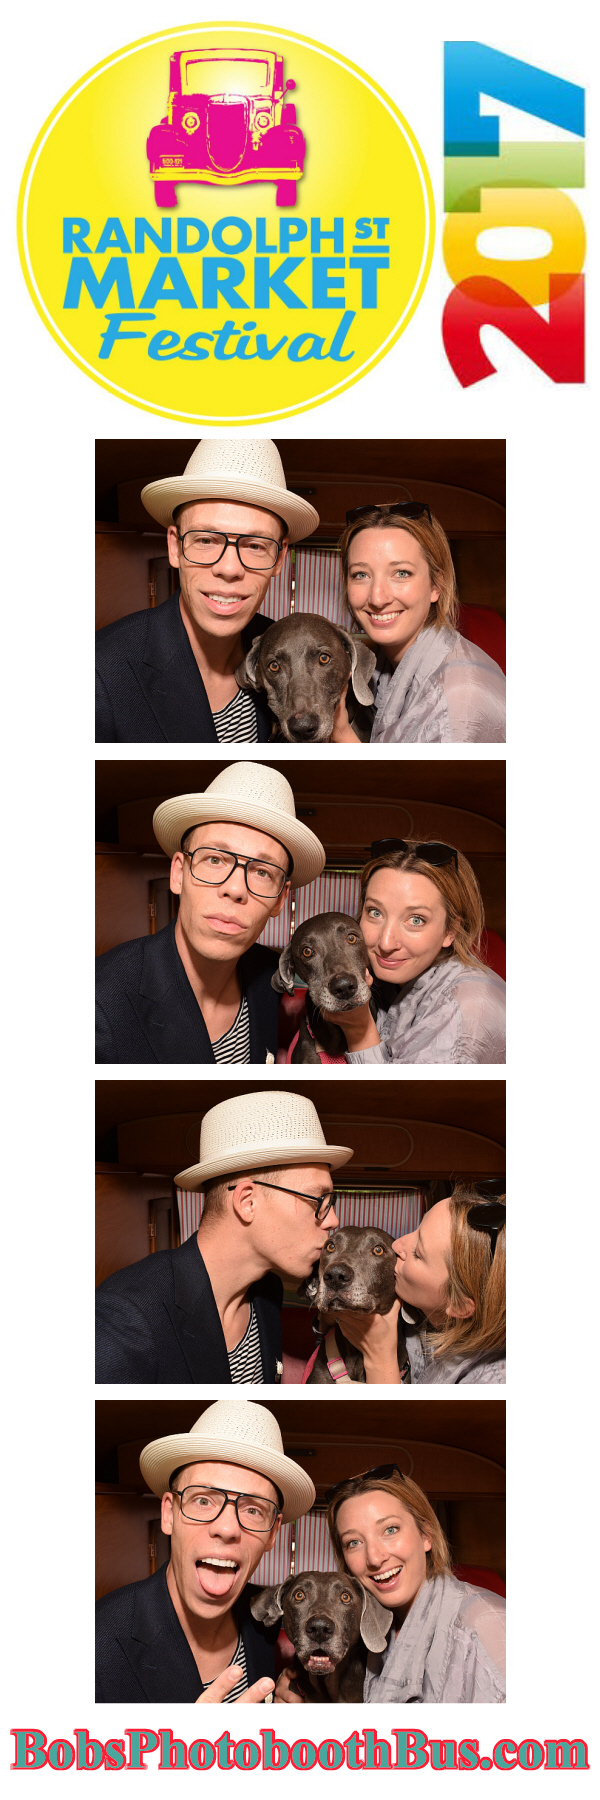 Couple with dog photo strip.jpg